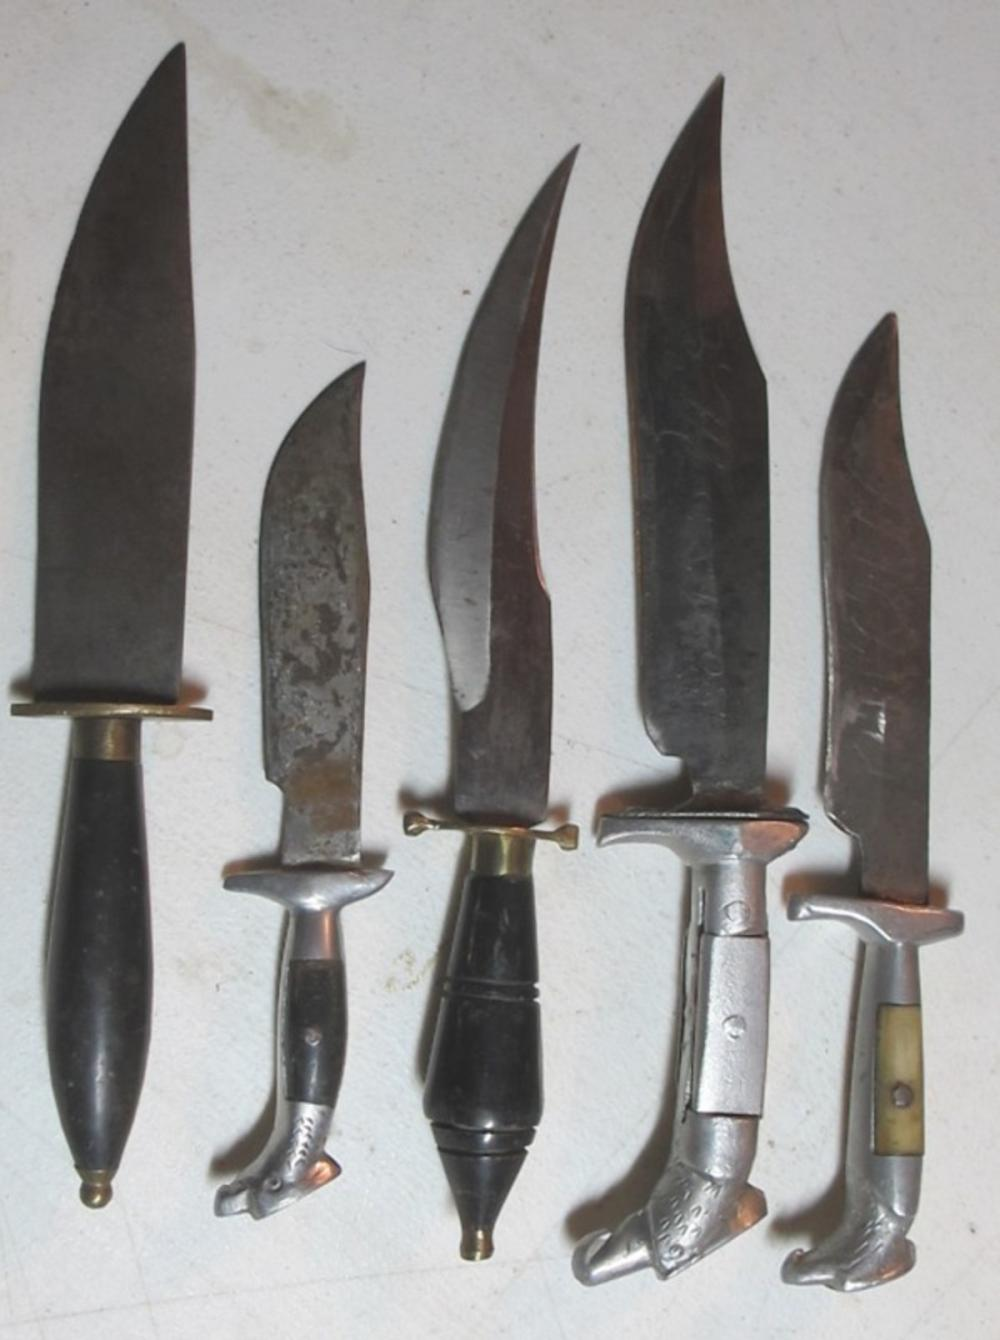 5 DIFF VINTAGE MEXICO FIXED HANDLE KNIVES EAGLE HEAD SIGNED BLADE ETC